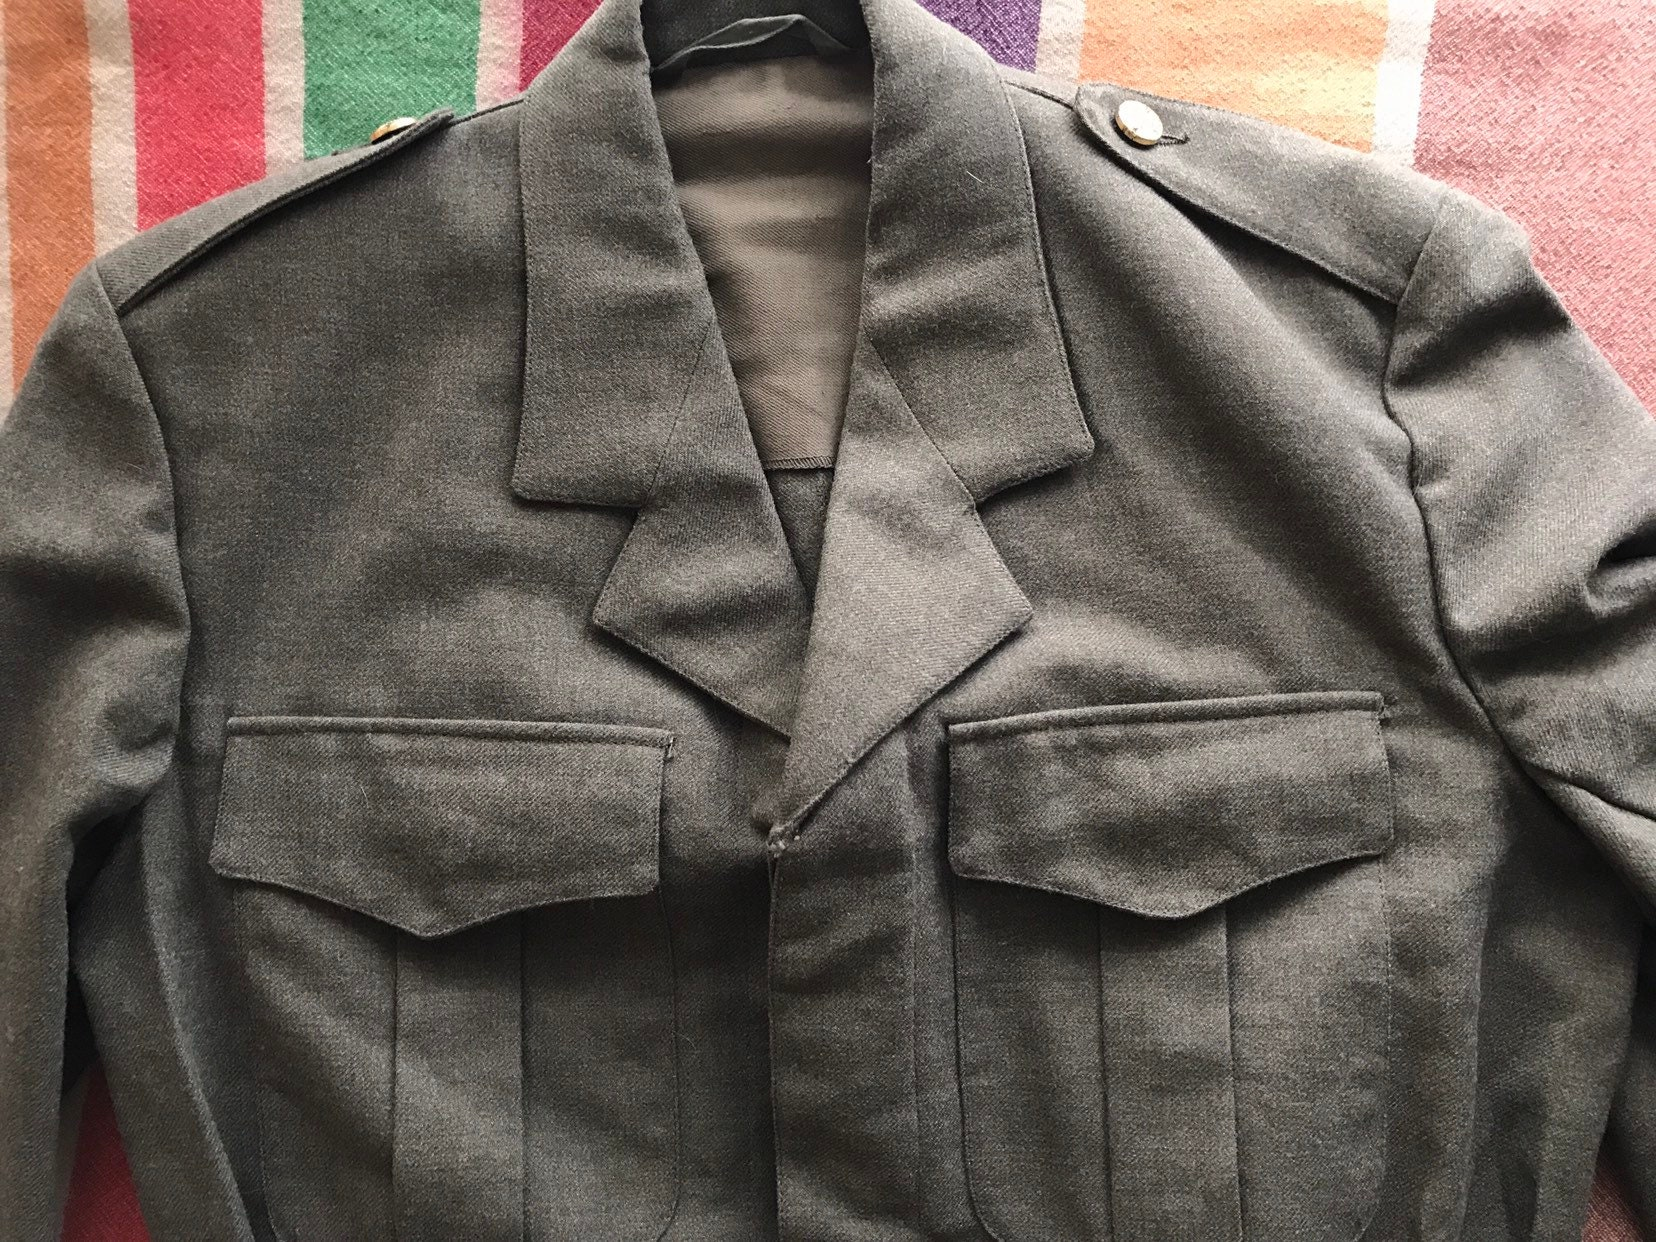 Belgium 1967 Belgian Military Jacket PVBA Begetex Vintage Militaria Battle  Dress Uniform / 60s 1960s Sixties / Cropped Olive Green / Medium